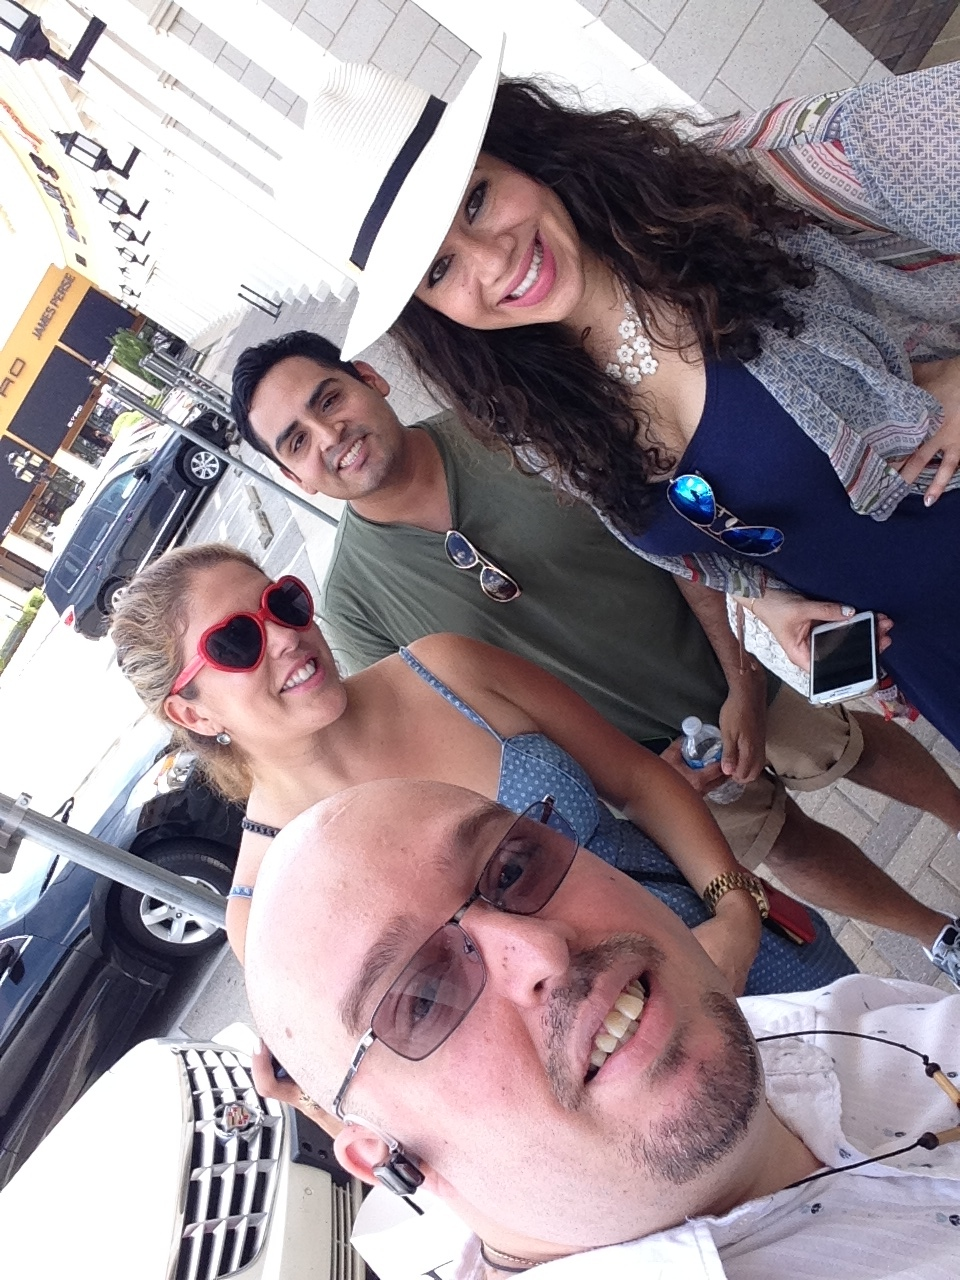 This is me with @XoXoLizza, @VeeTravels and @LeauraLuciano #4coolbloggers